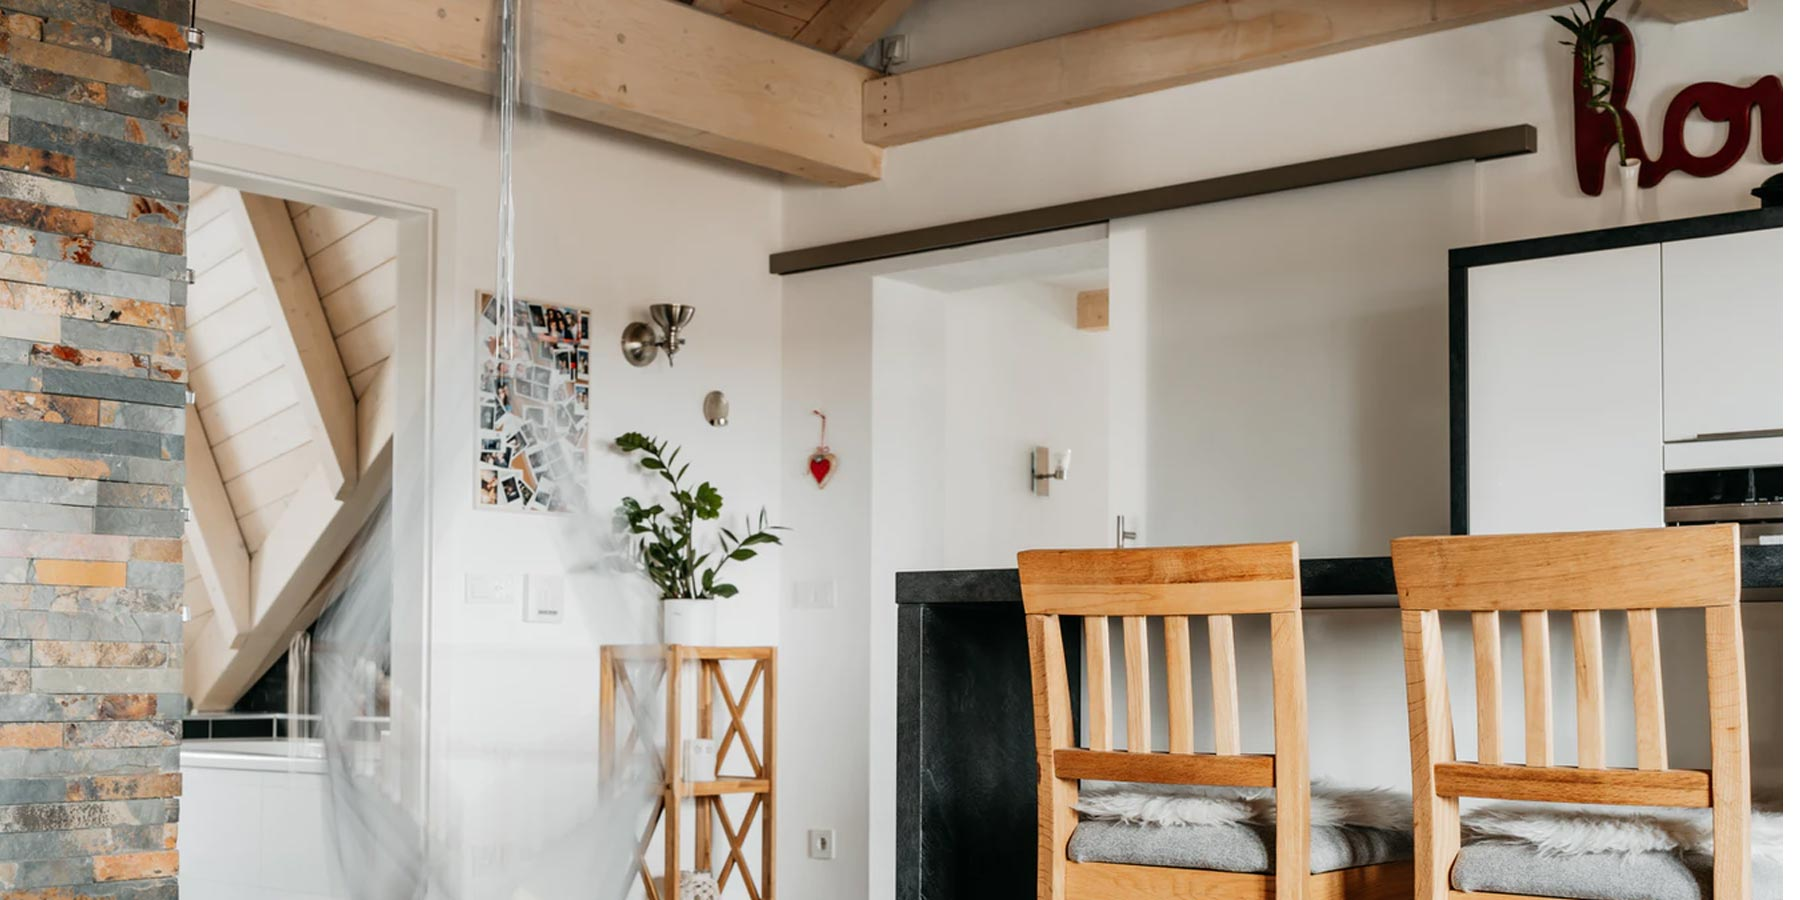 Farmhouse decoration ideas: statement wooden beams. picture features wooden beams on wall corner in a kitchen like space